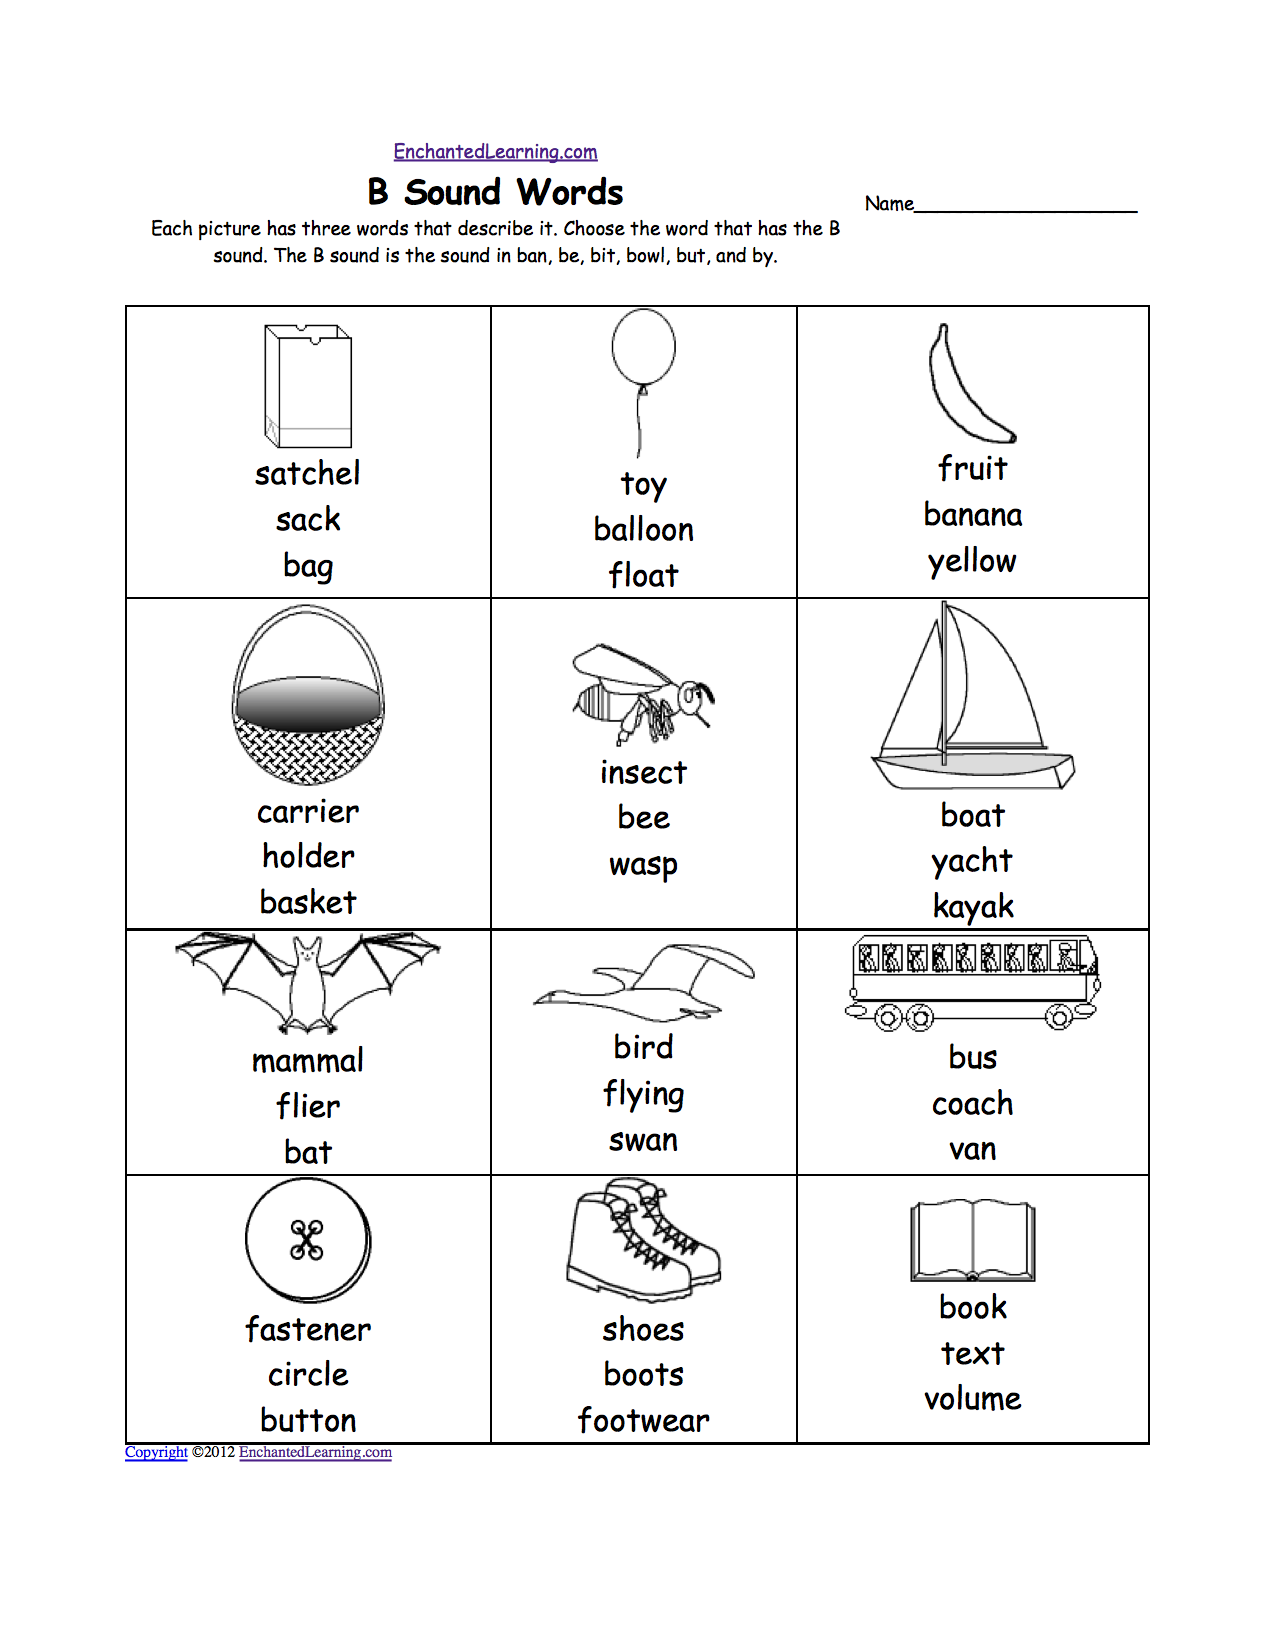 Aldiablosus  Pleasant Phonics Worksheets Multiple Choice Worksheets To Print  With Glamorous Quotbquot Sound Phonics Worksheet Multiple Choice Each Picture Has Three Words That Describe It Choose The Word That Has A Quotbquot Sound The Quotbquot Sound Is The Sound  With Attractive Percent Math Worksheets Also Genetics Worksheets For Middle School In Addition Place Value Decimal Worksheets And Greatest Common Factor Printable Worksheets As Well As Answers For Worksheets Additionally Common Core Vocabulary Worksheets From Enchantedlearningcom With Aldiablosus  Glamorous Phonics Worksheets Multiple Choice Worksheets To Print  With Attractive Quotbquot Sound Phonics Worksheet Multiple Choice Each Picture Has Three Words That Describe It Choose The Word That Has A Quotbquot Sound The Quotbquot Sound Is The Sound  And Pleasant Percent Math Worksheets Also Genetics Worksheets For Middle School In Addition Place Value Decimal Worksheets From Enchantedlearningcom